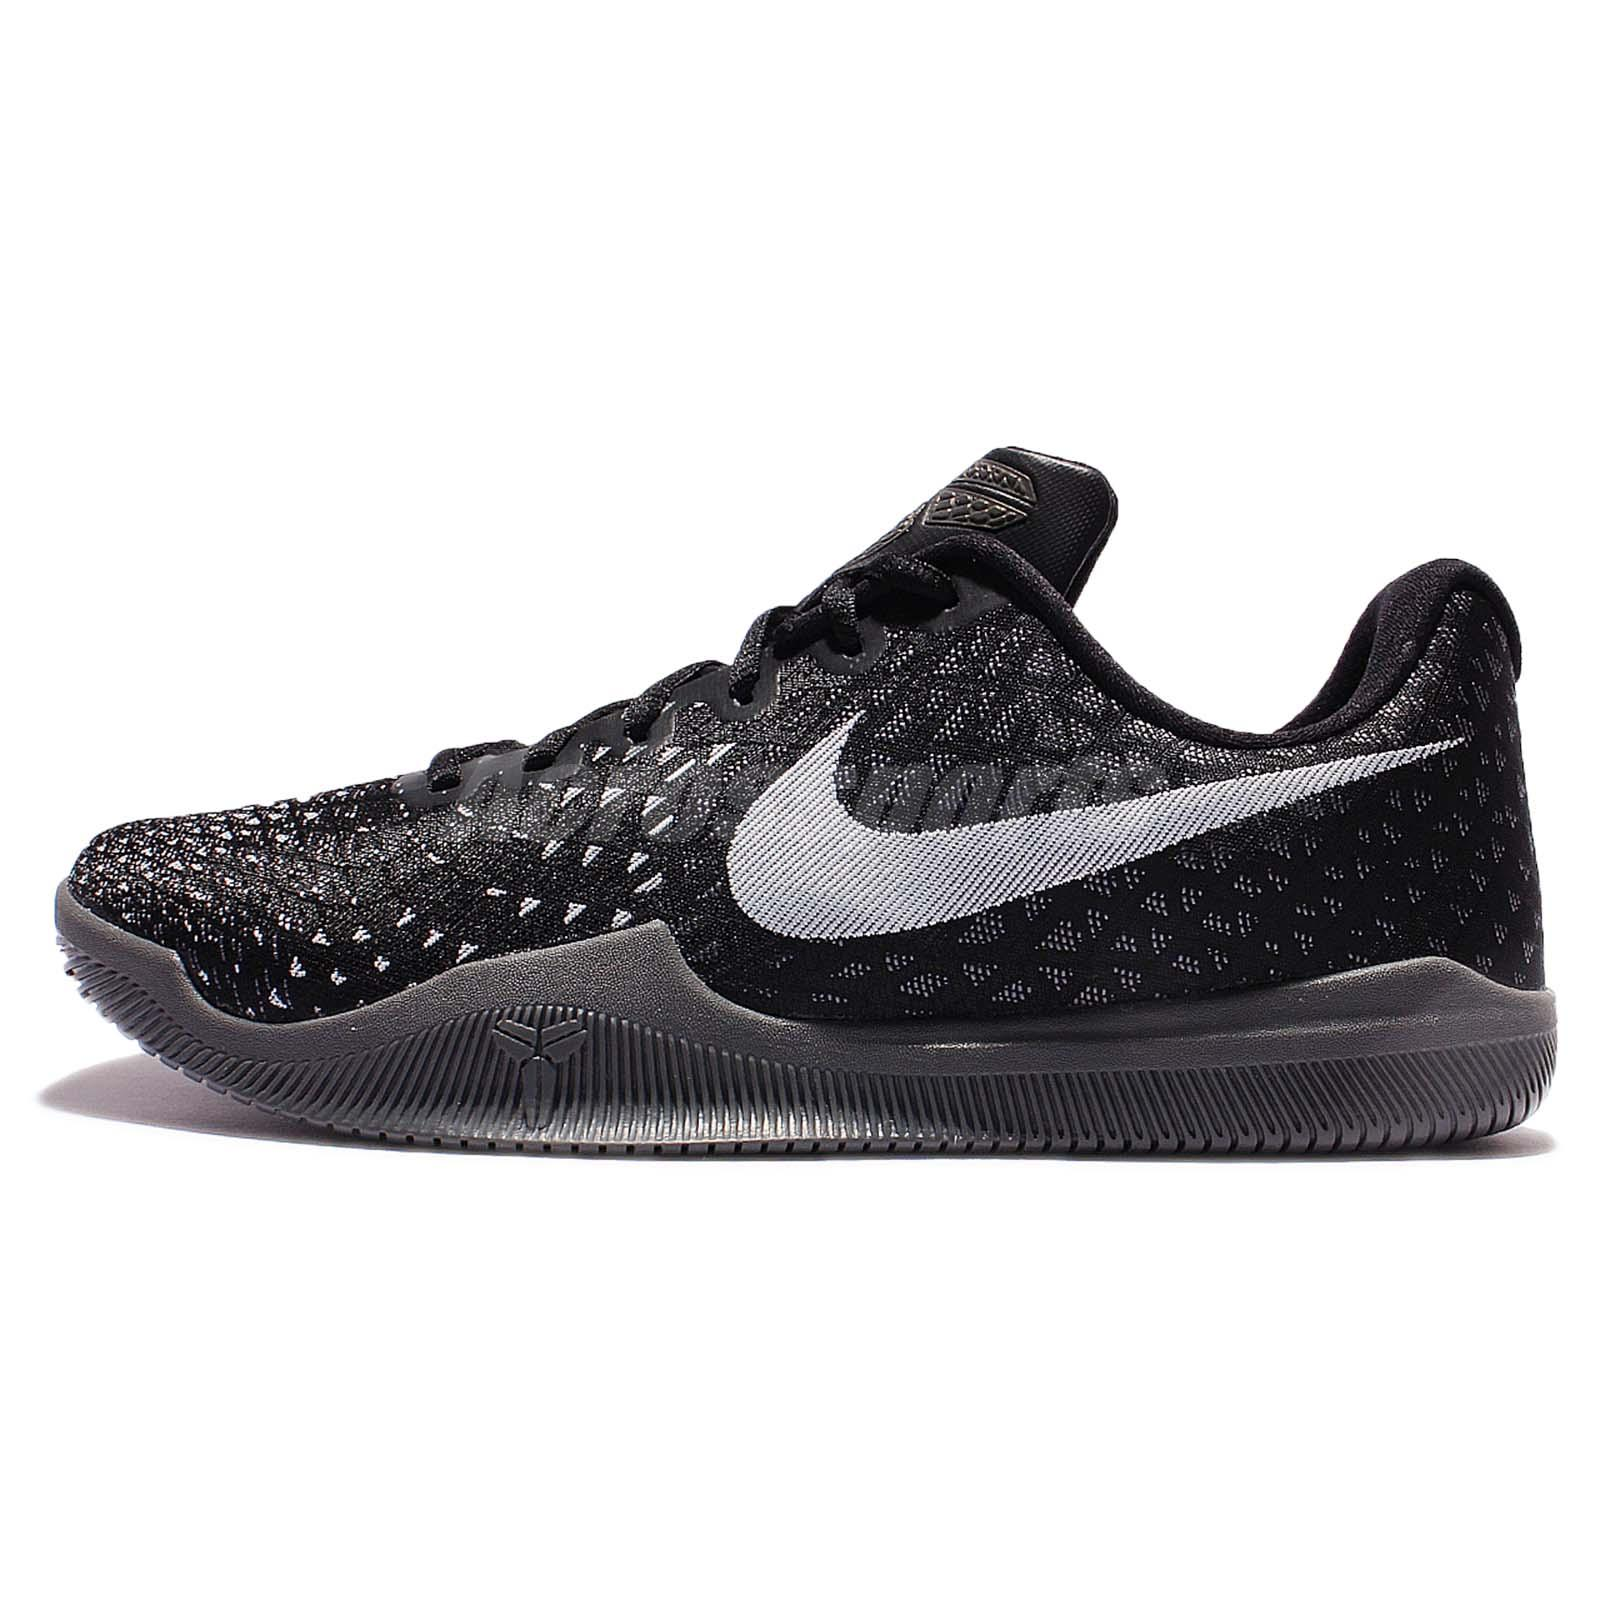 nike kobe mamba instinct dk grey Customize a pair of men s Air Max shoes ... ee3f5b22e